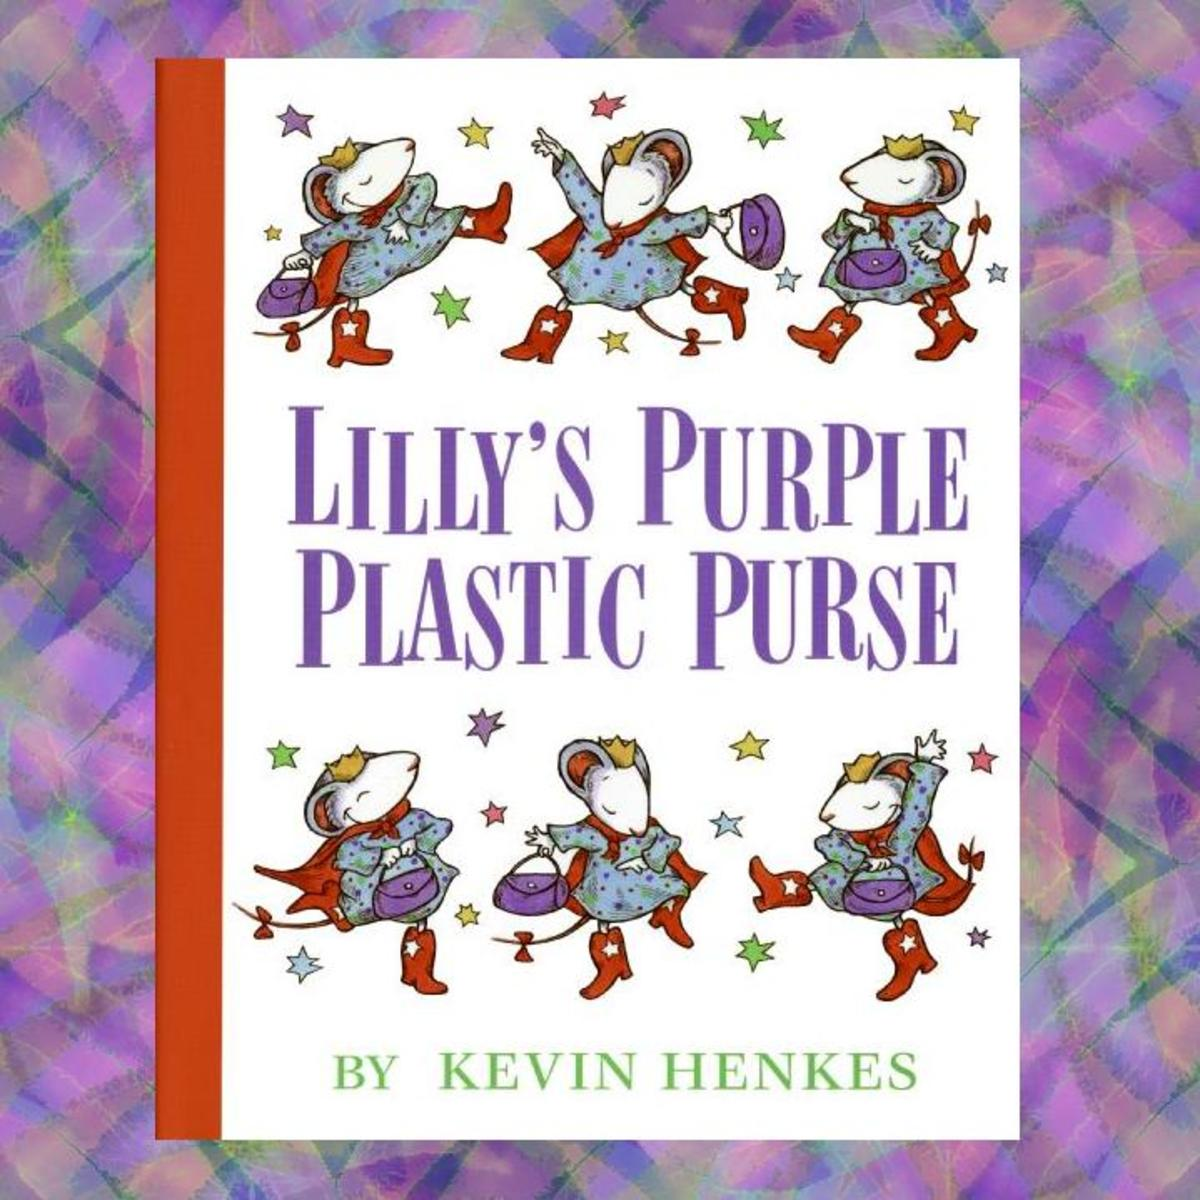 Lilly's Purple Plastic Purse book cover.